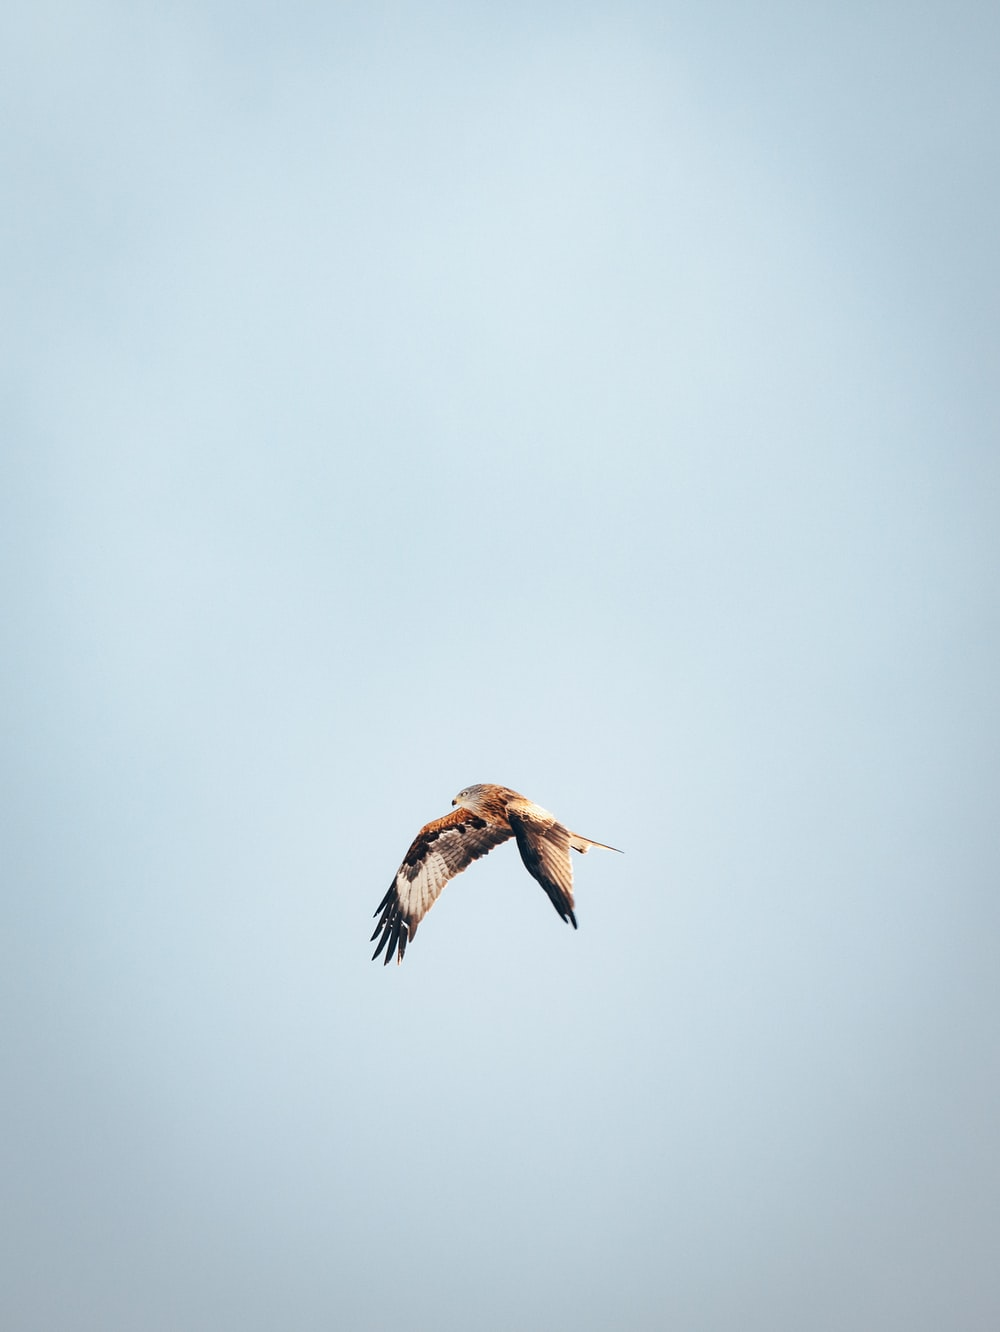 flying brown and white bird during daytime